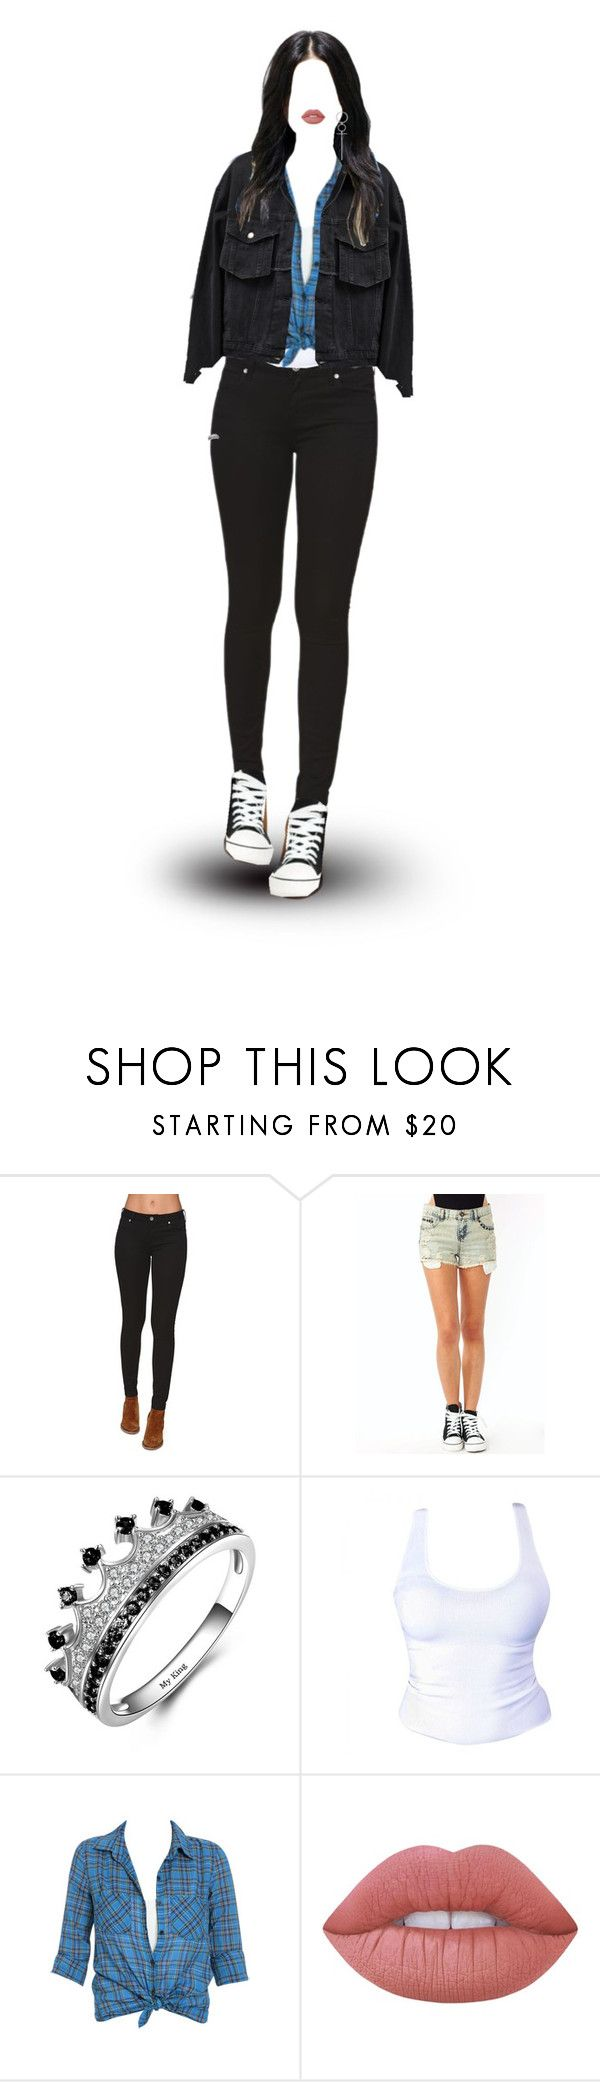 """""""Ordinary Girl"""" by mybunnybooty ❤ liked on Polyvore featuring Bullhead Denim Co., Wet Seal, Aalto and Lime Crime"""